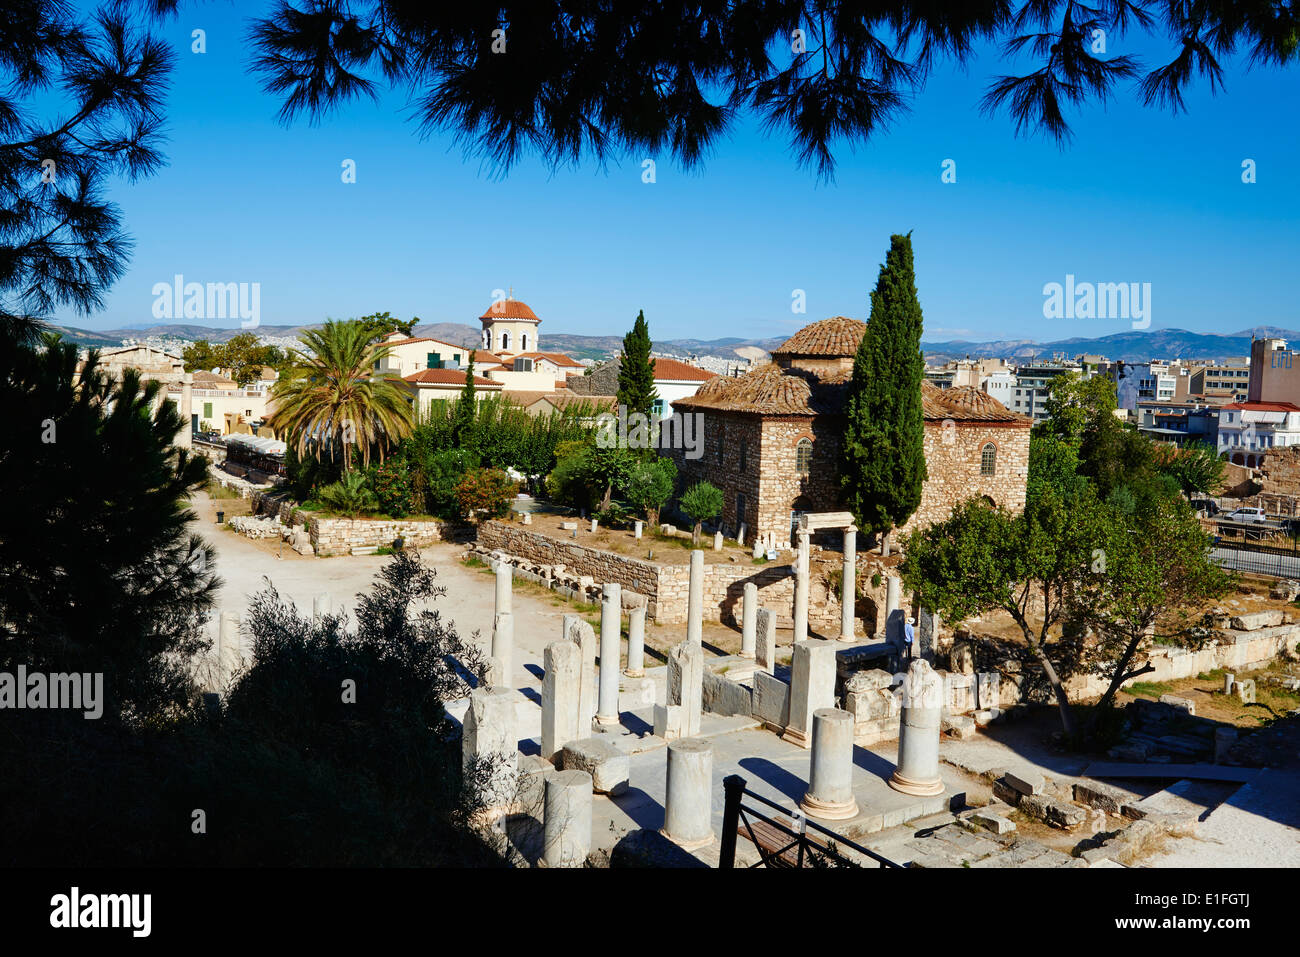 Greece, Athens, The Roman Agora, Plaka neighbourhood - Stock Image